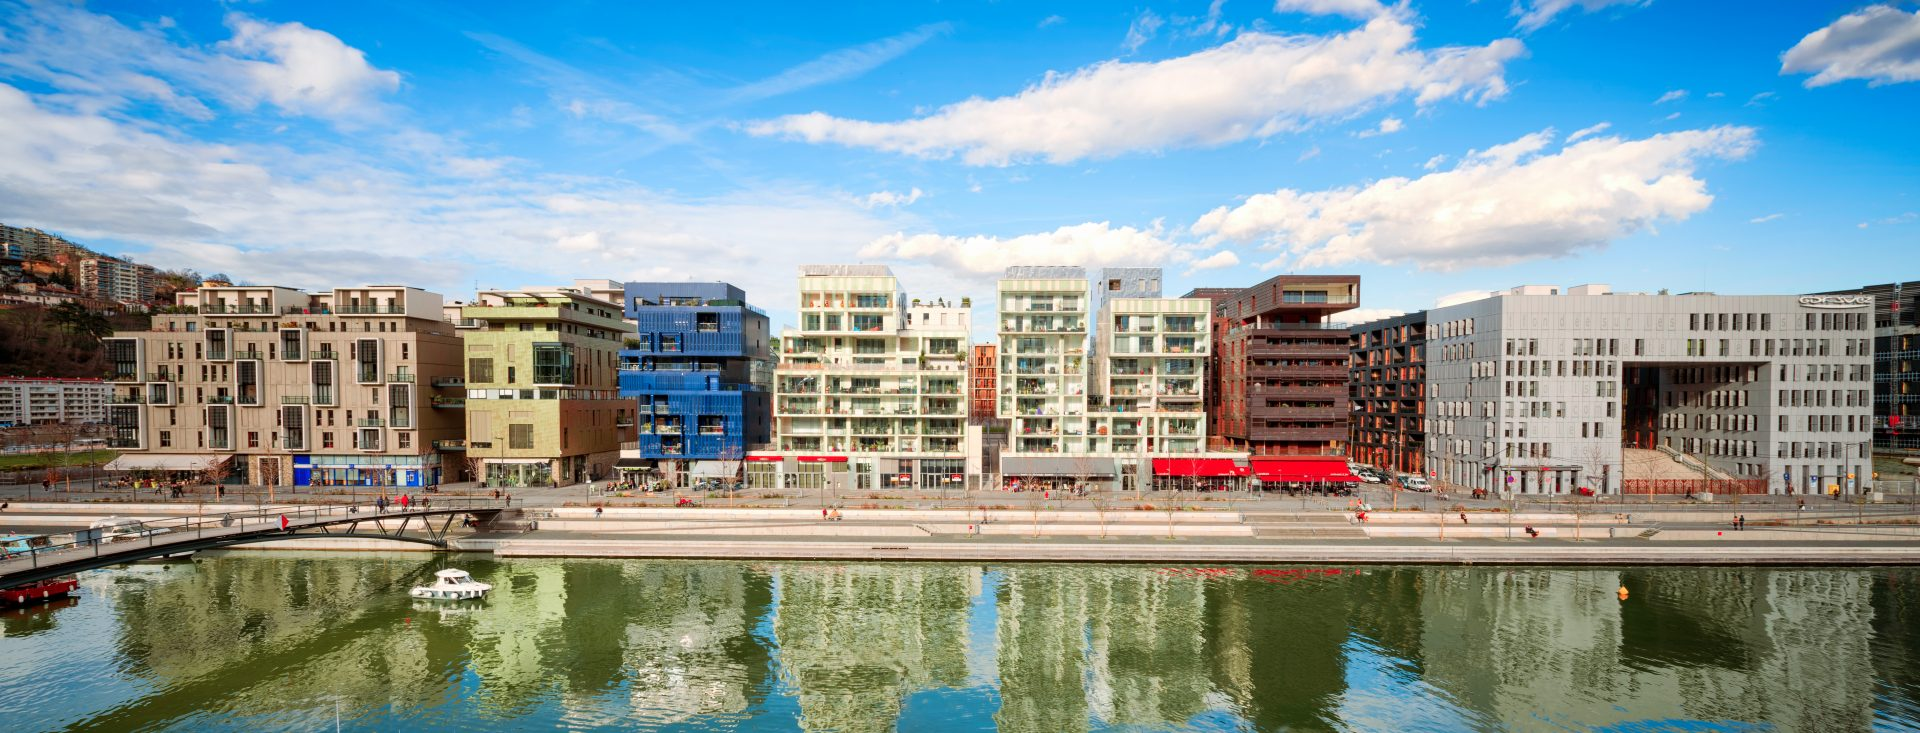 CONFLUENCE IMMOBILIER